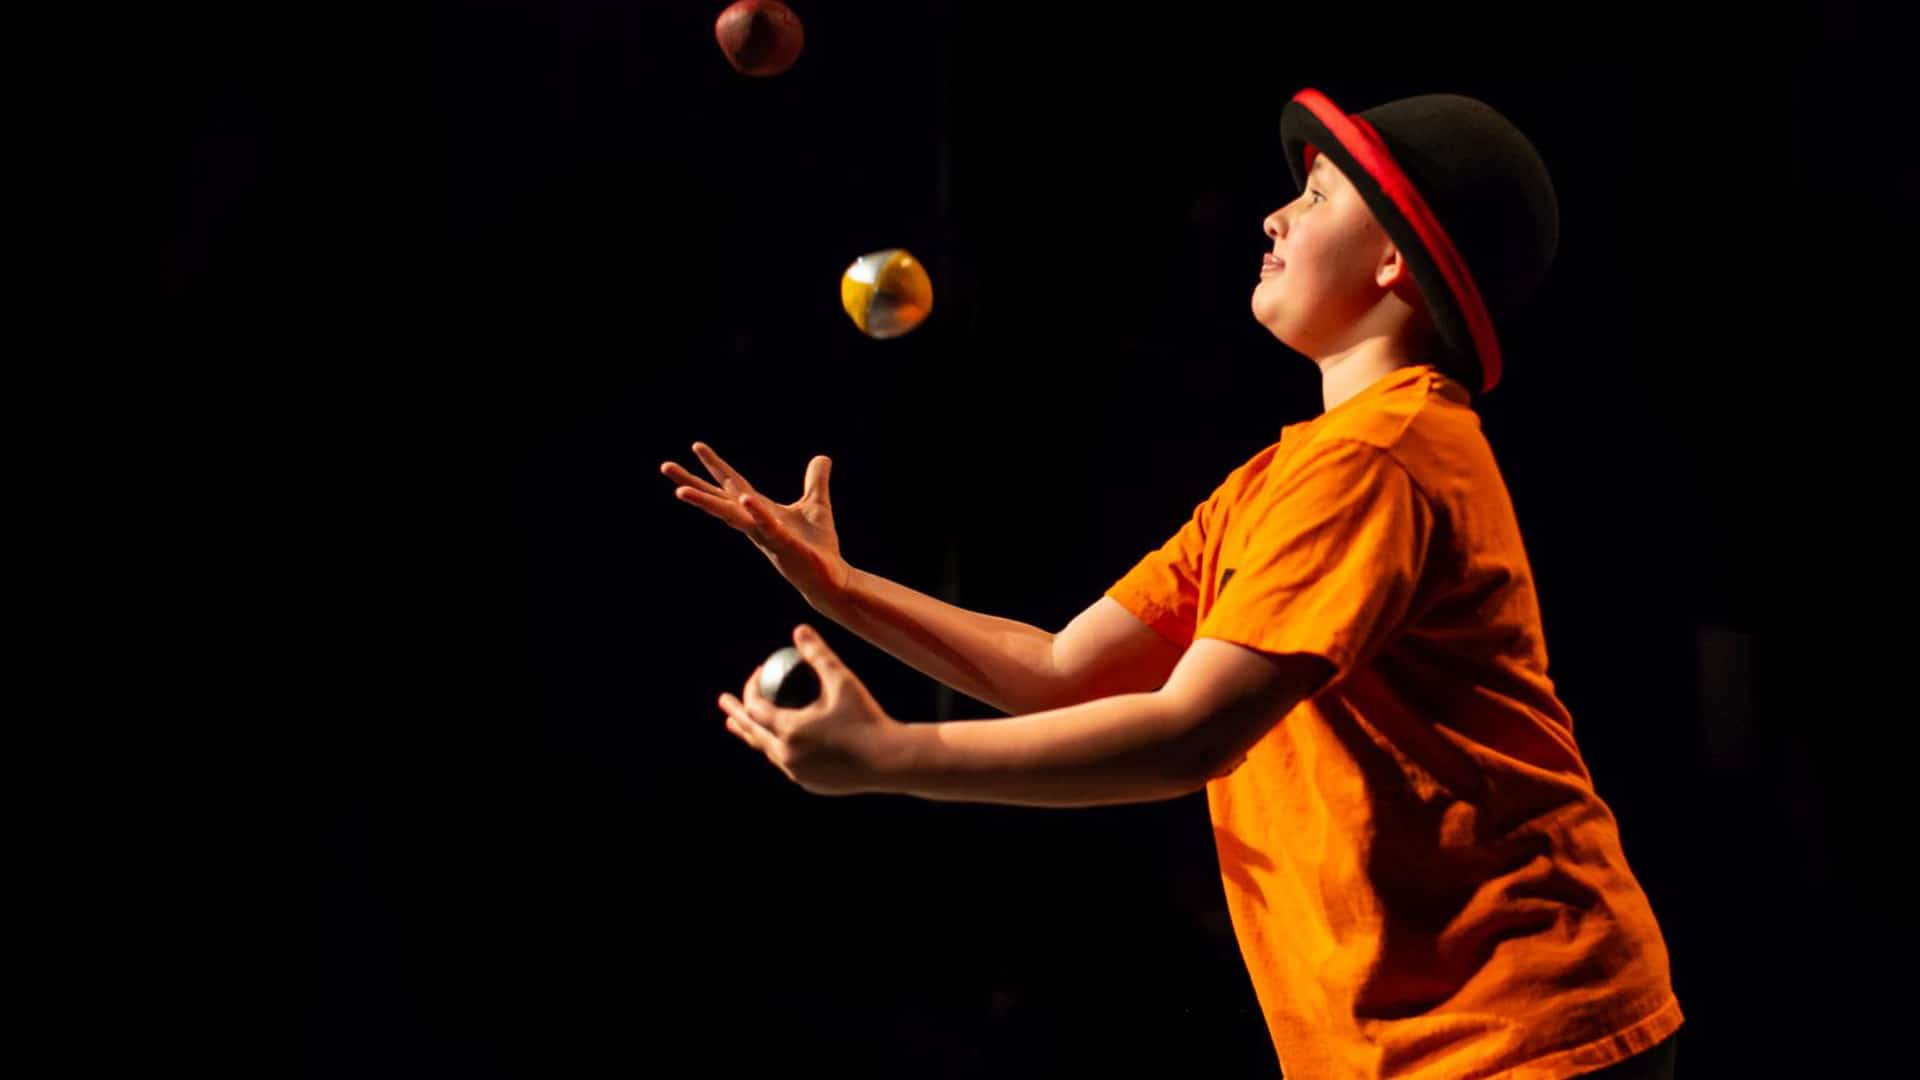 Young performer wearing a bowler hat, juggling